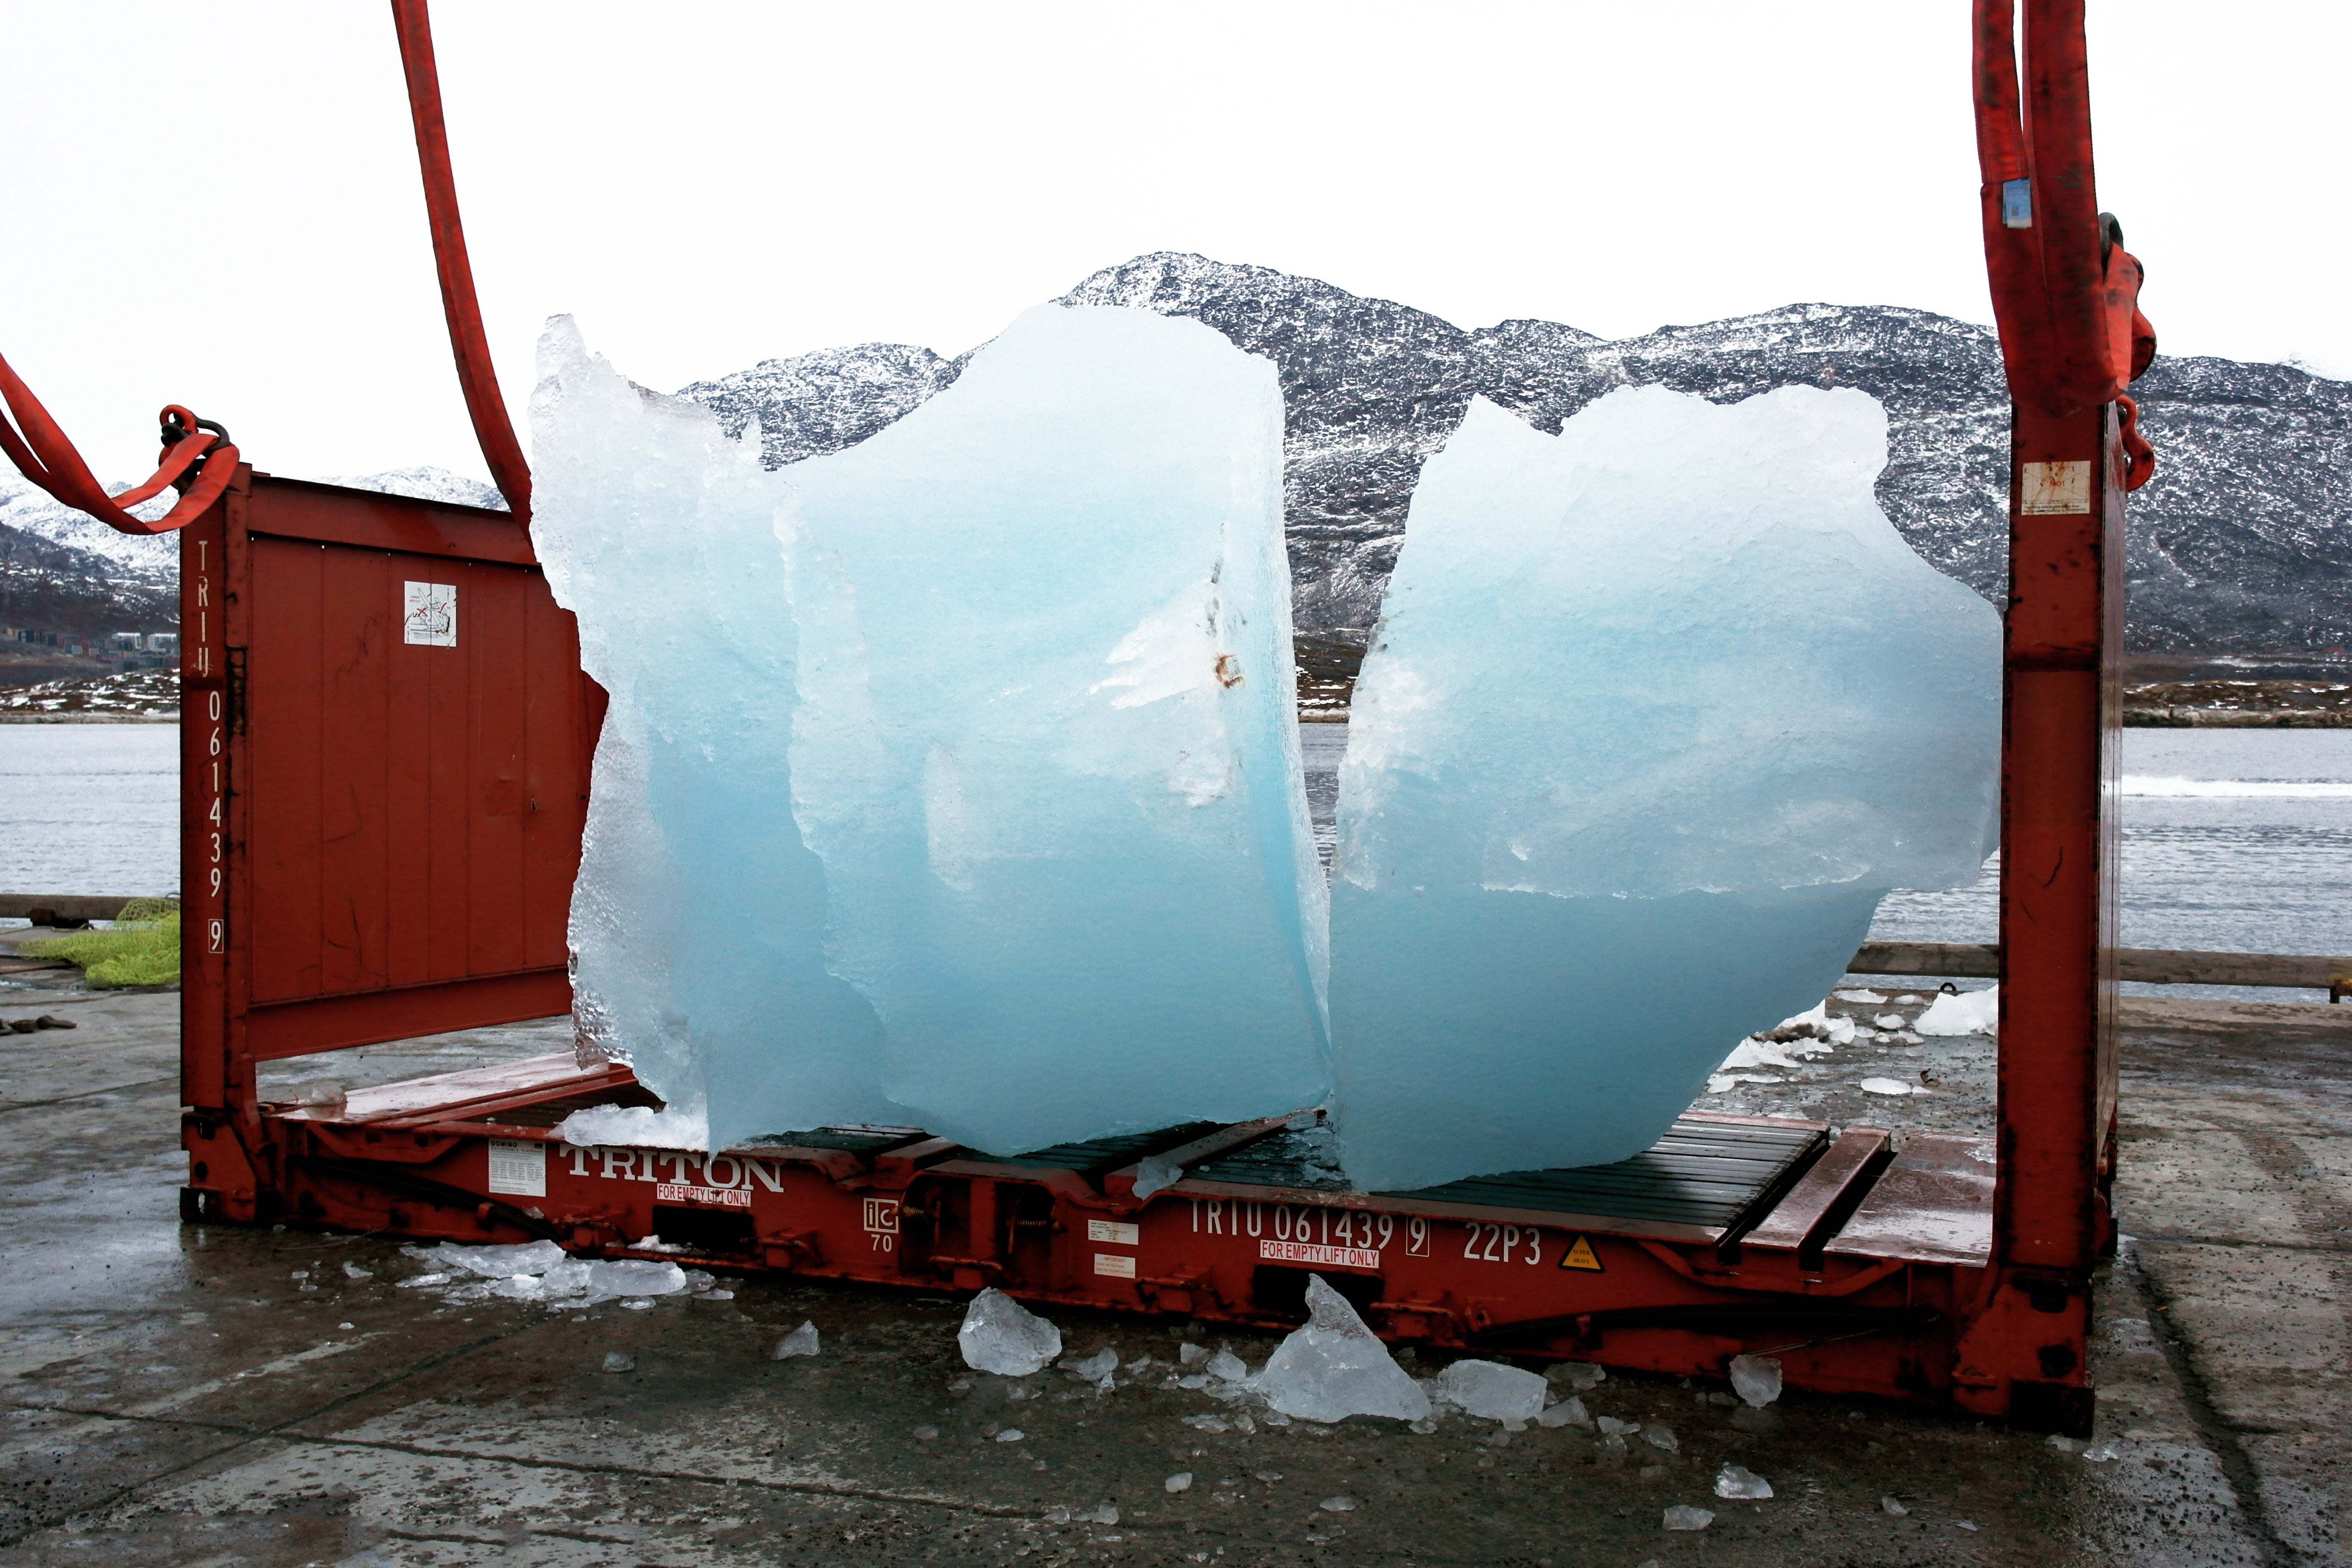 What It Takes To Transport 112 Tonnes Of Arctic Ice Over 3,000 Kilometres